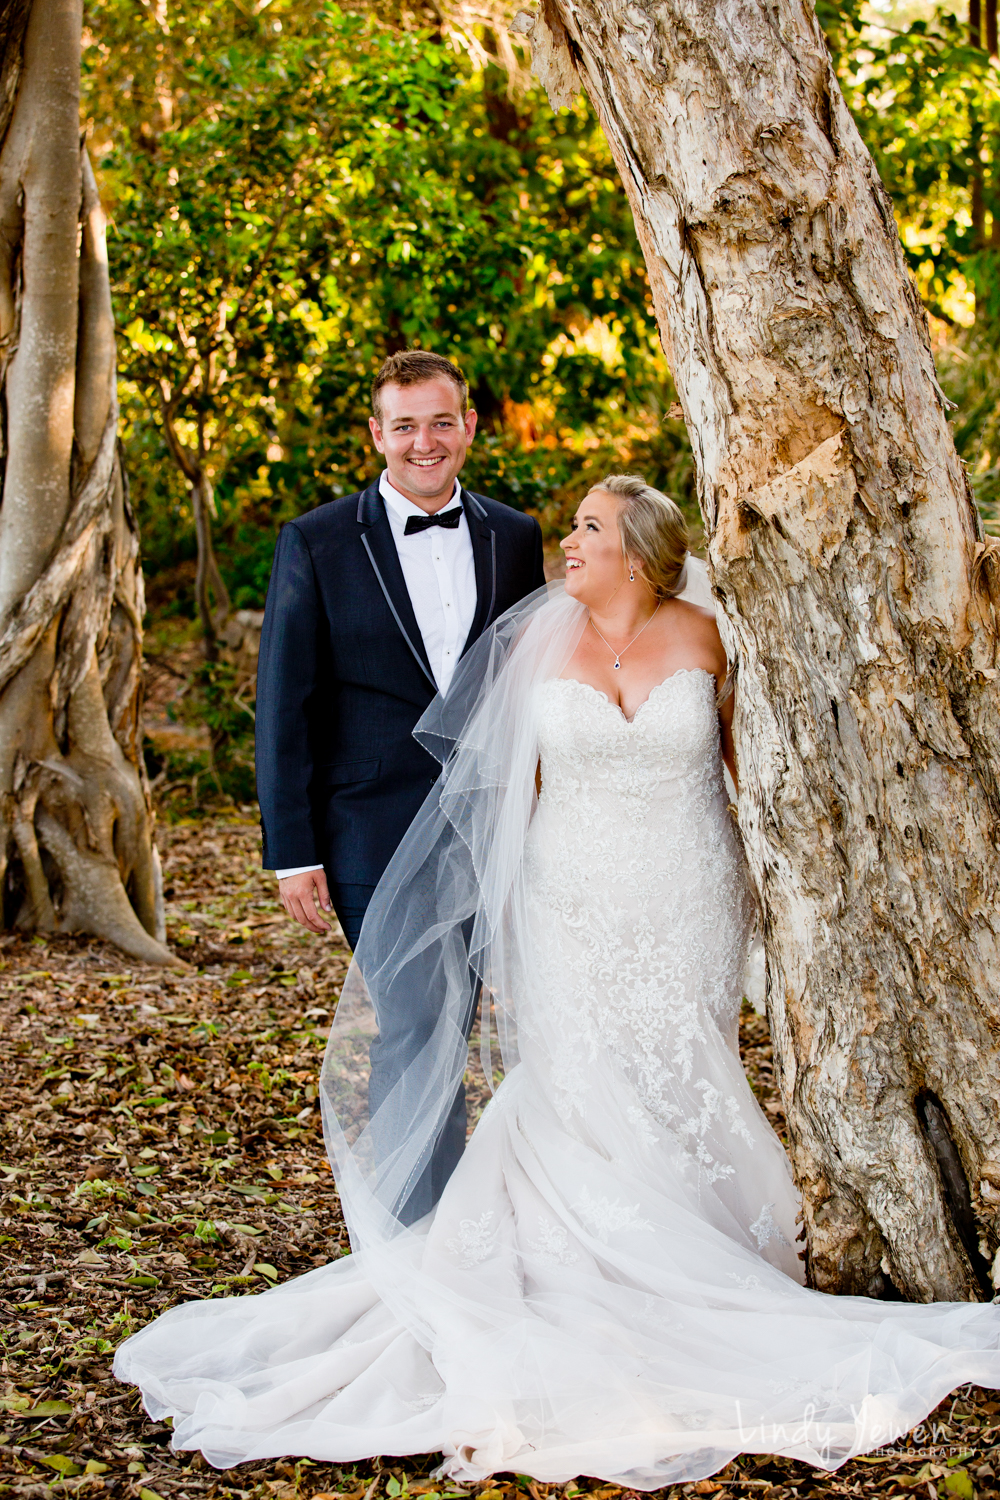 Bribie-Island-wedding-photographer-Chloe-Adam 421.jpg